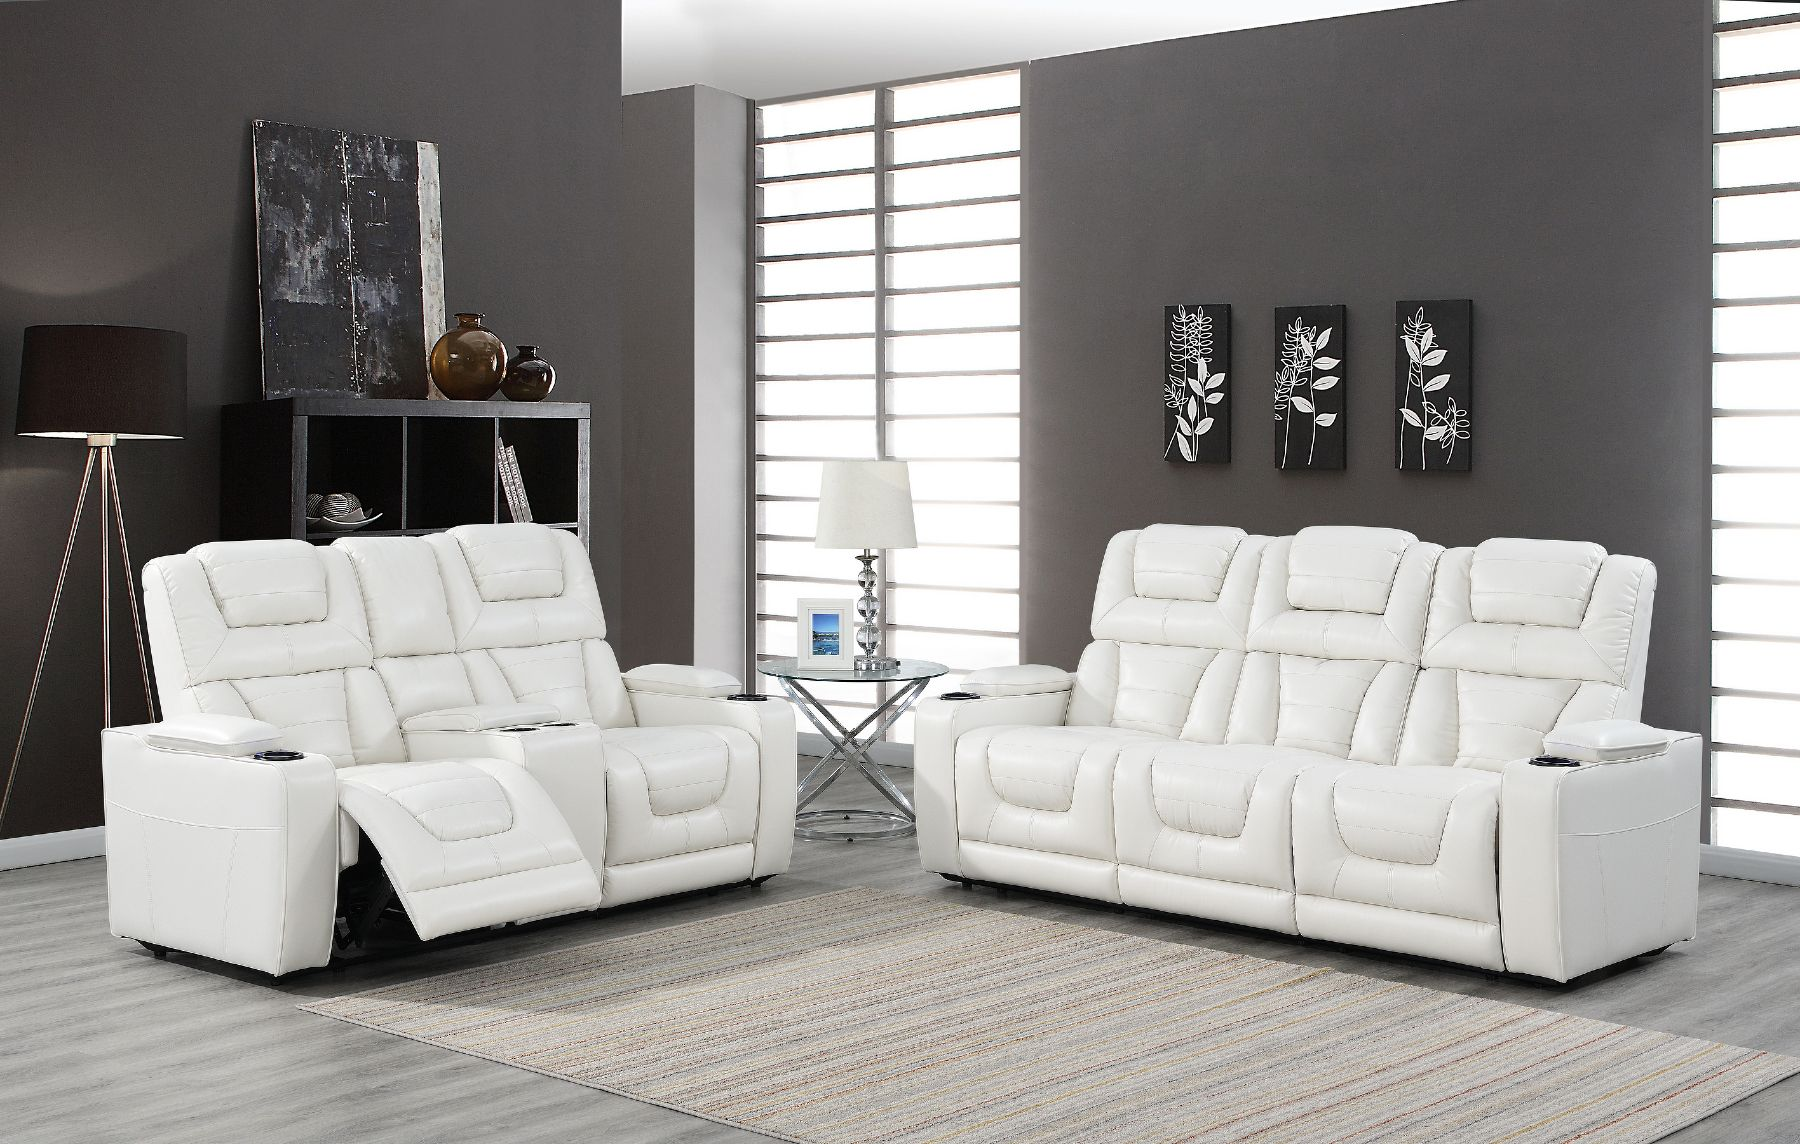 New White Slipcover Ikea Couches Ikea Couch White Slipcovers Ikea Living Room